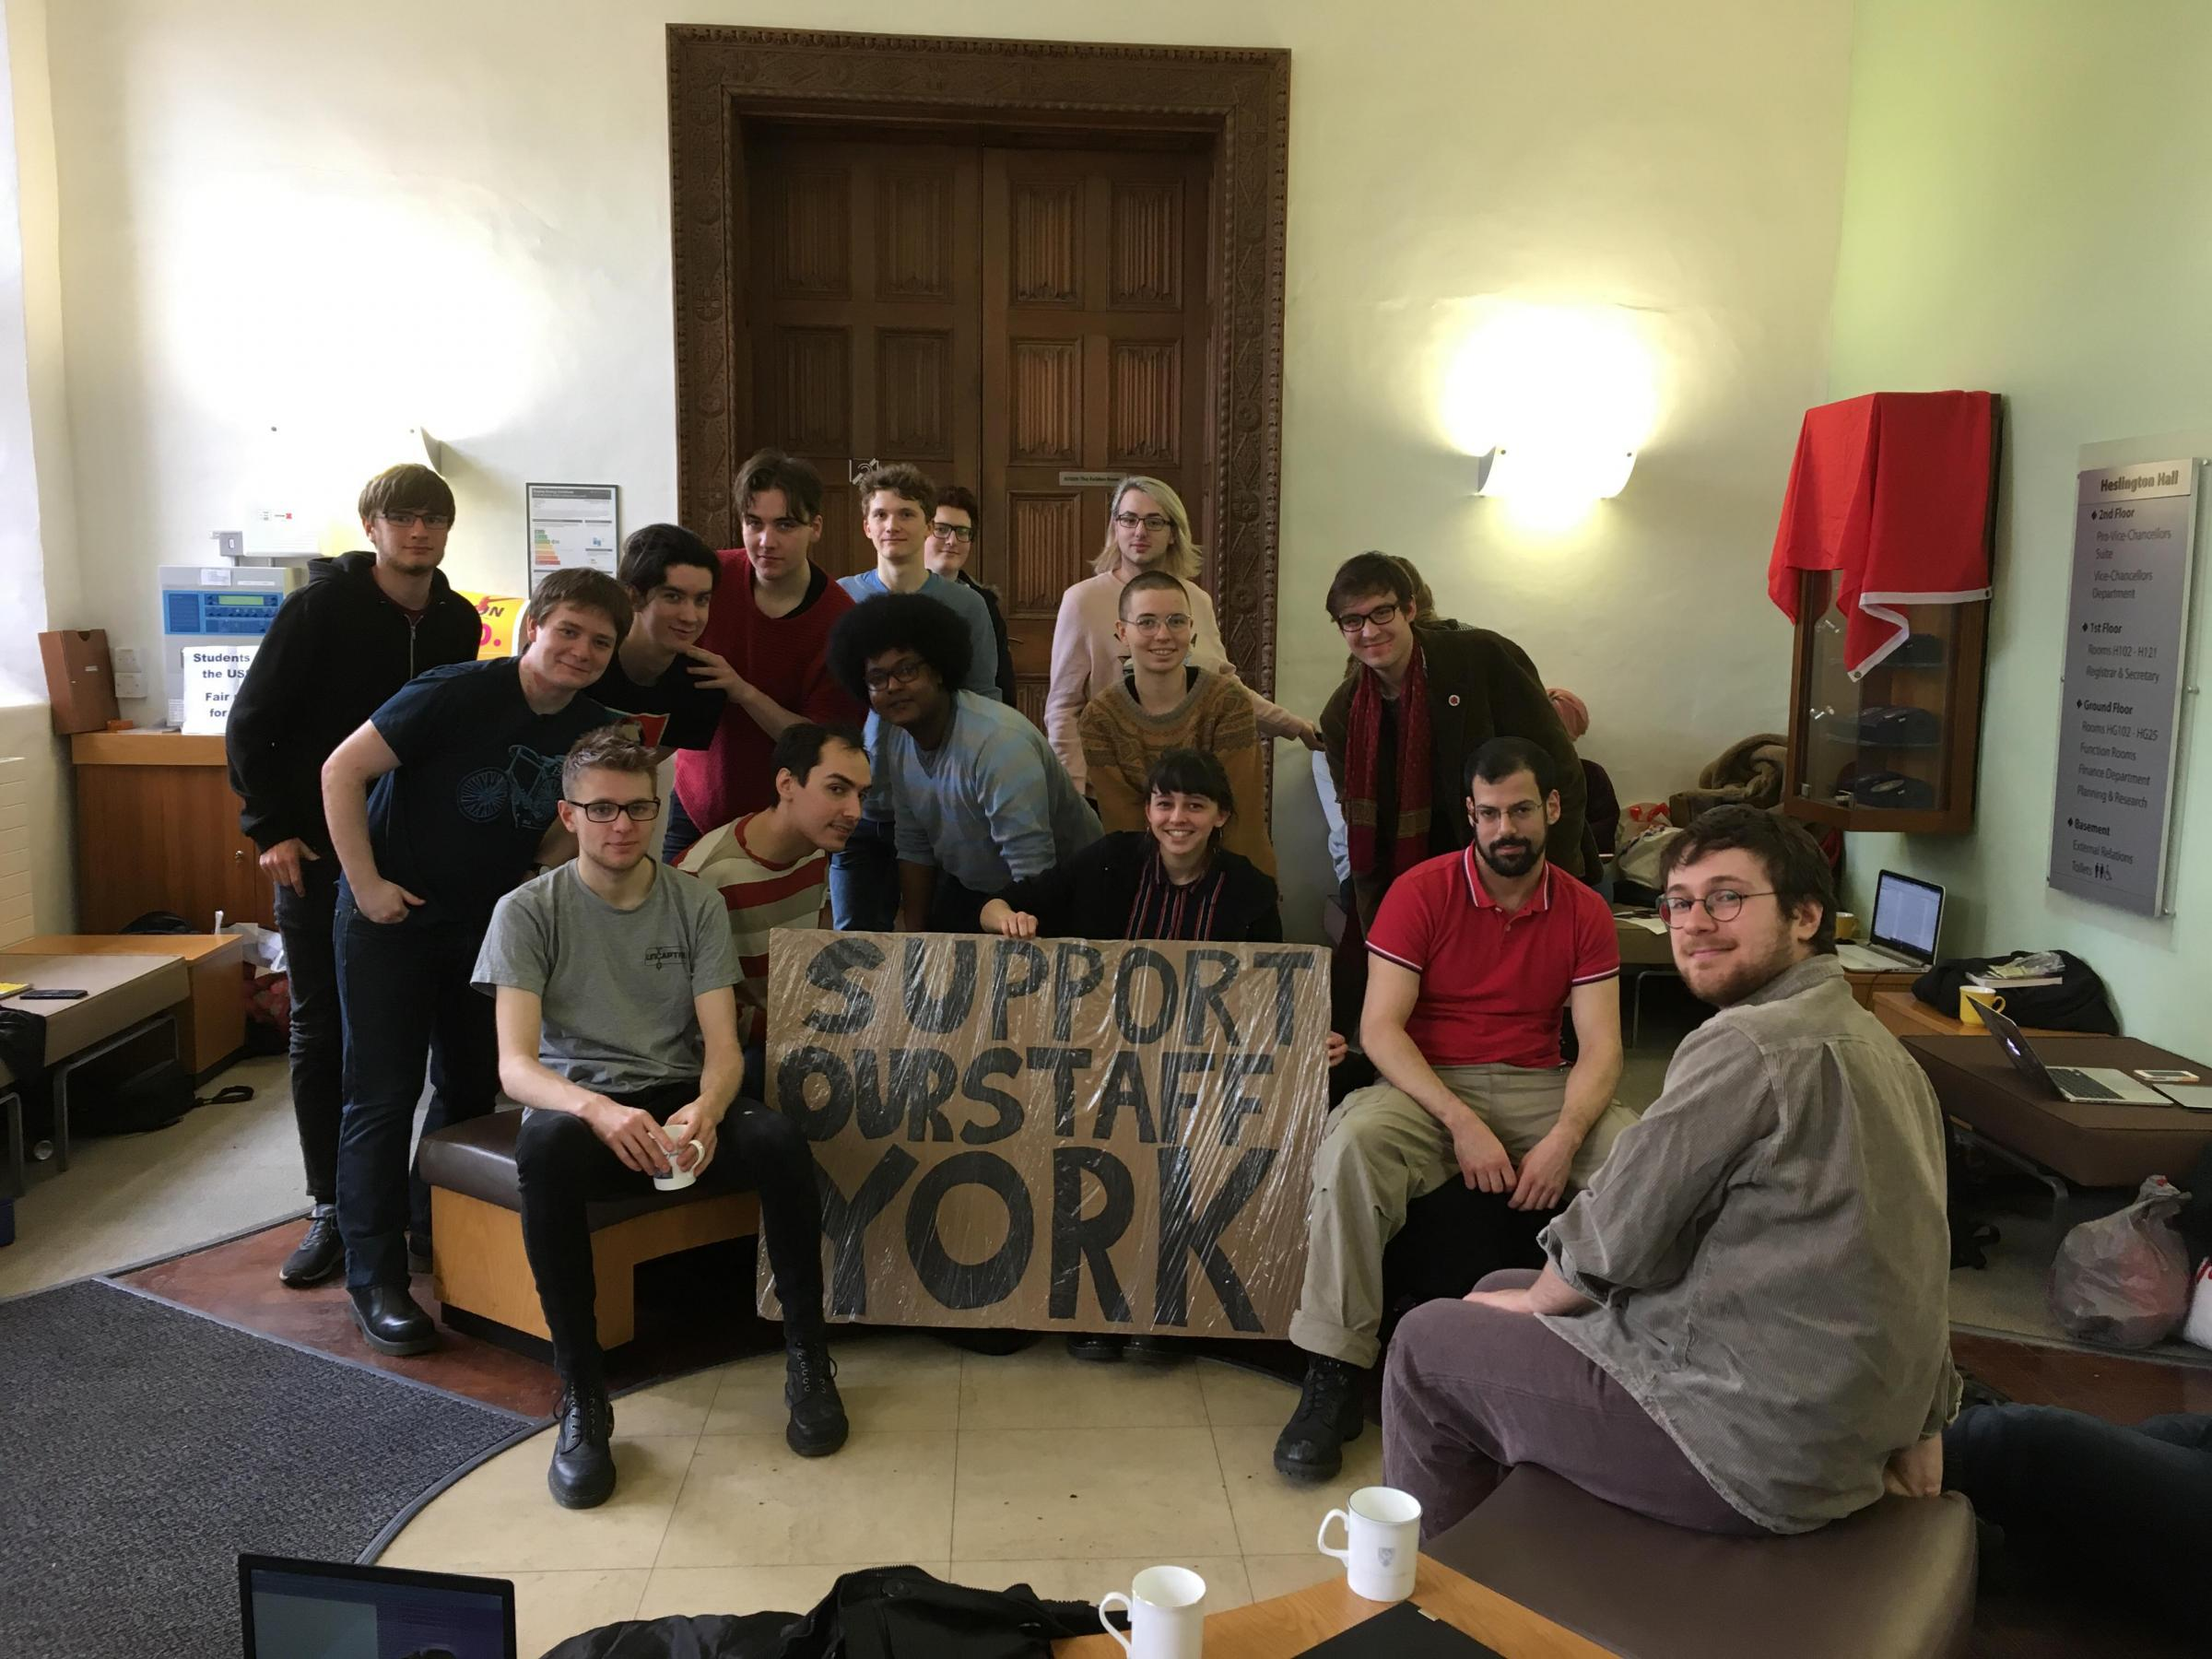 Students occupy Heslington Hall in support of lecturers in pension dispute